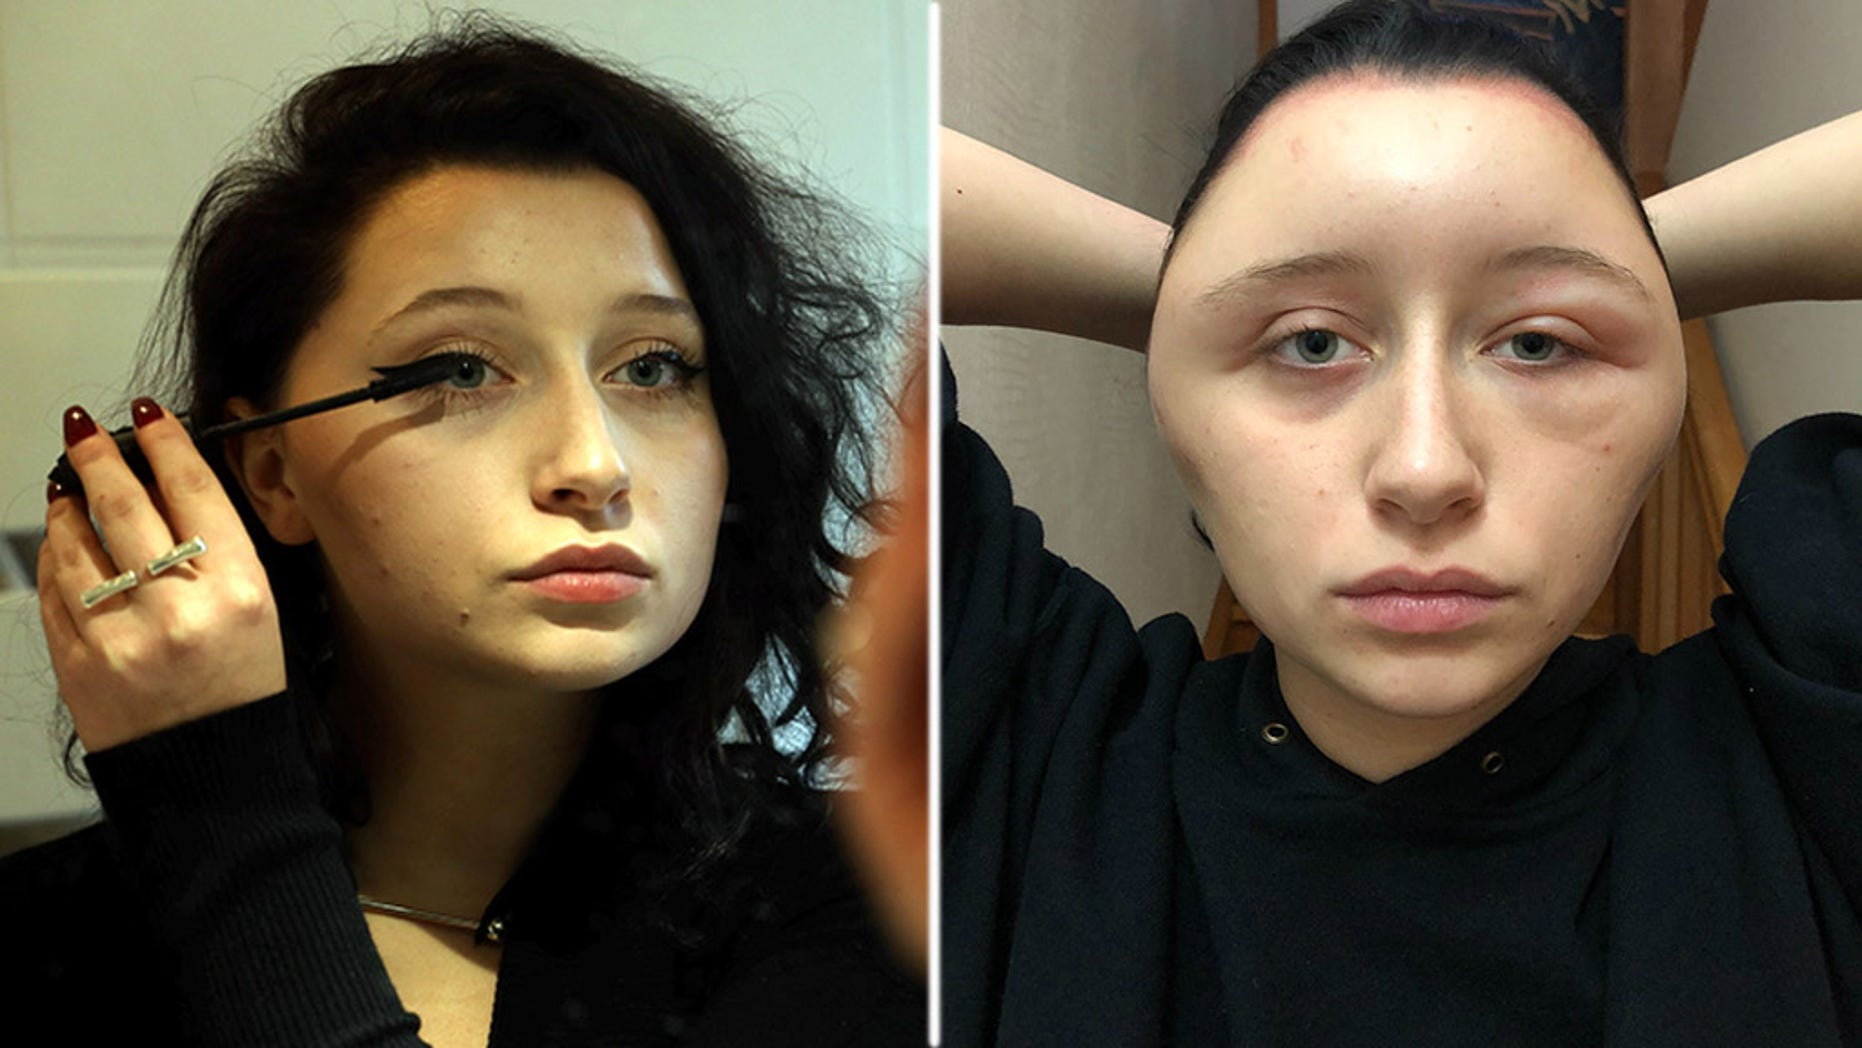 A French woman said that her head had become swollen after an allergic reaction to the hair dye.